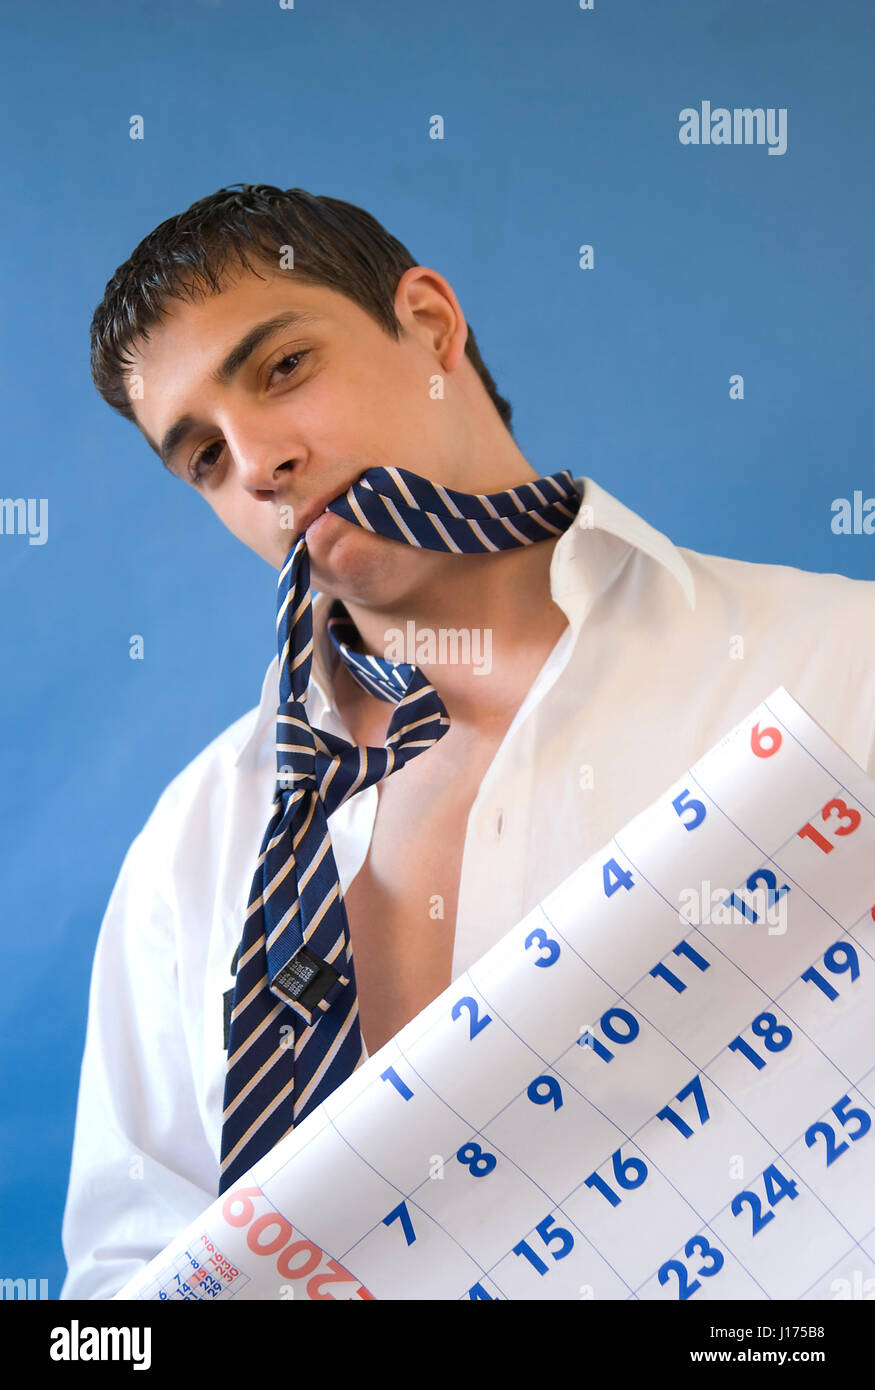 Stressed man biting his tie, holding a calendar. - Stock Image